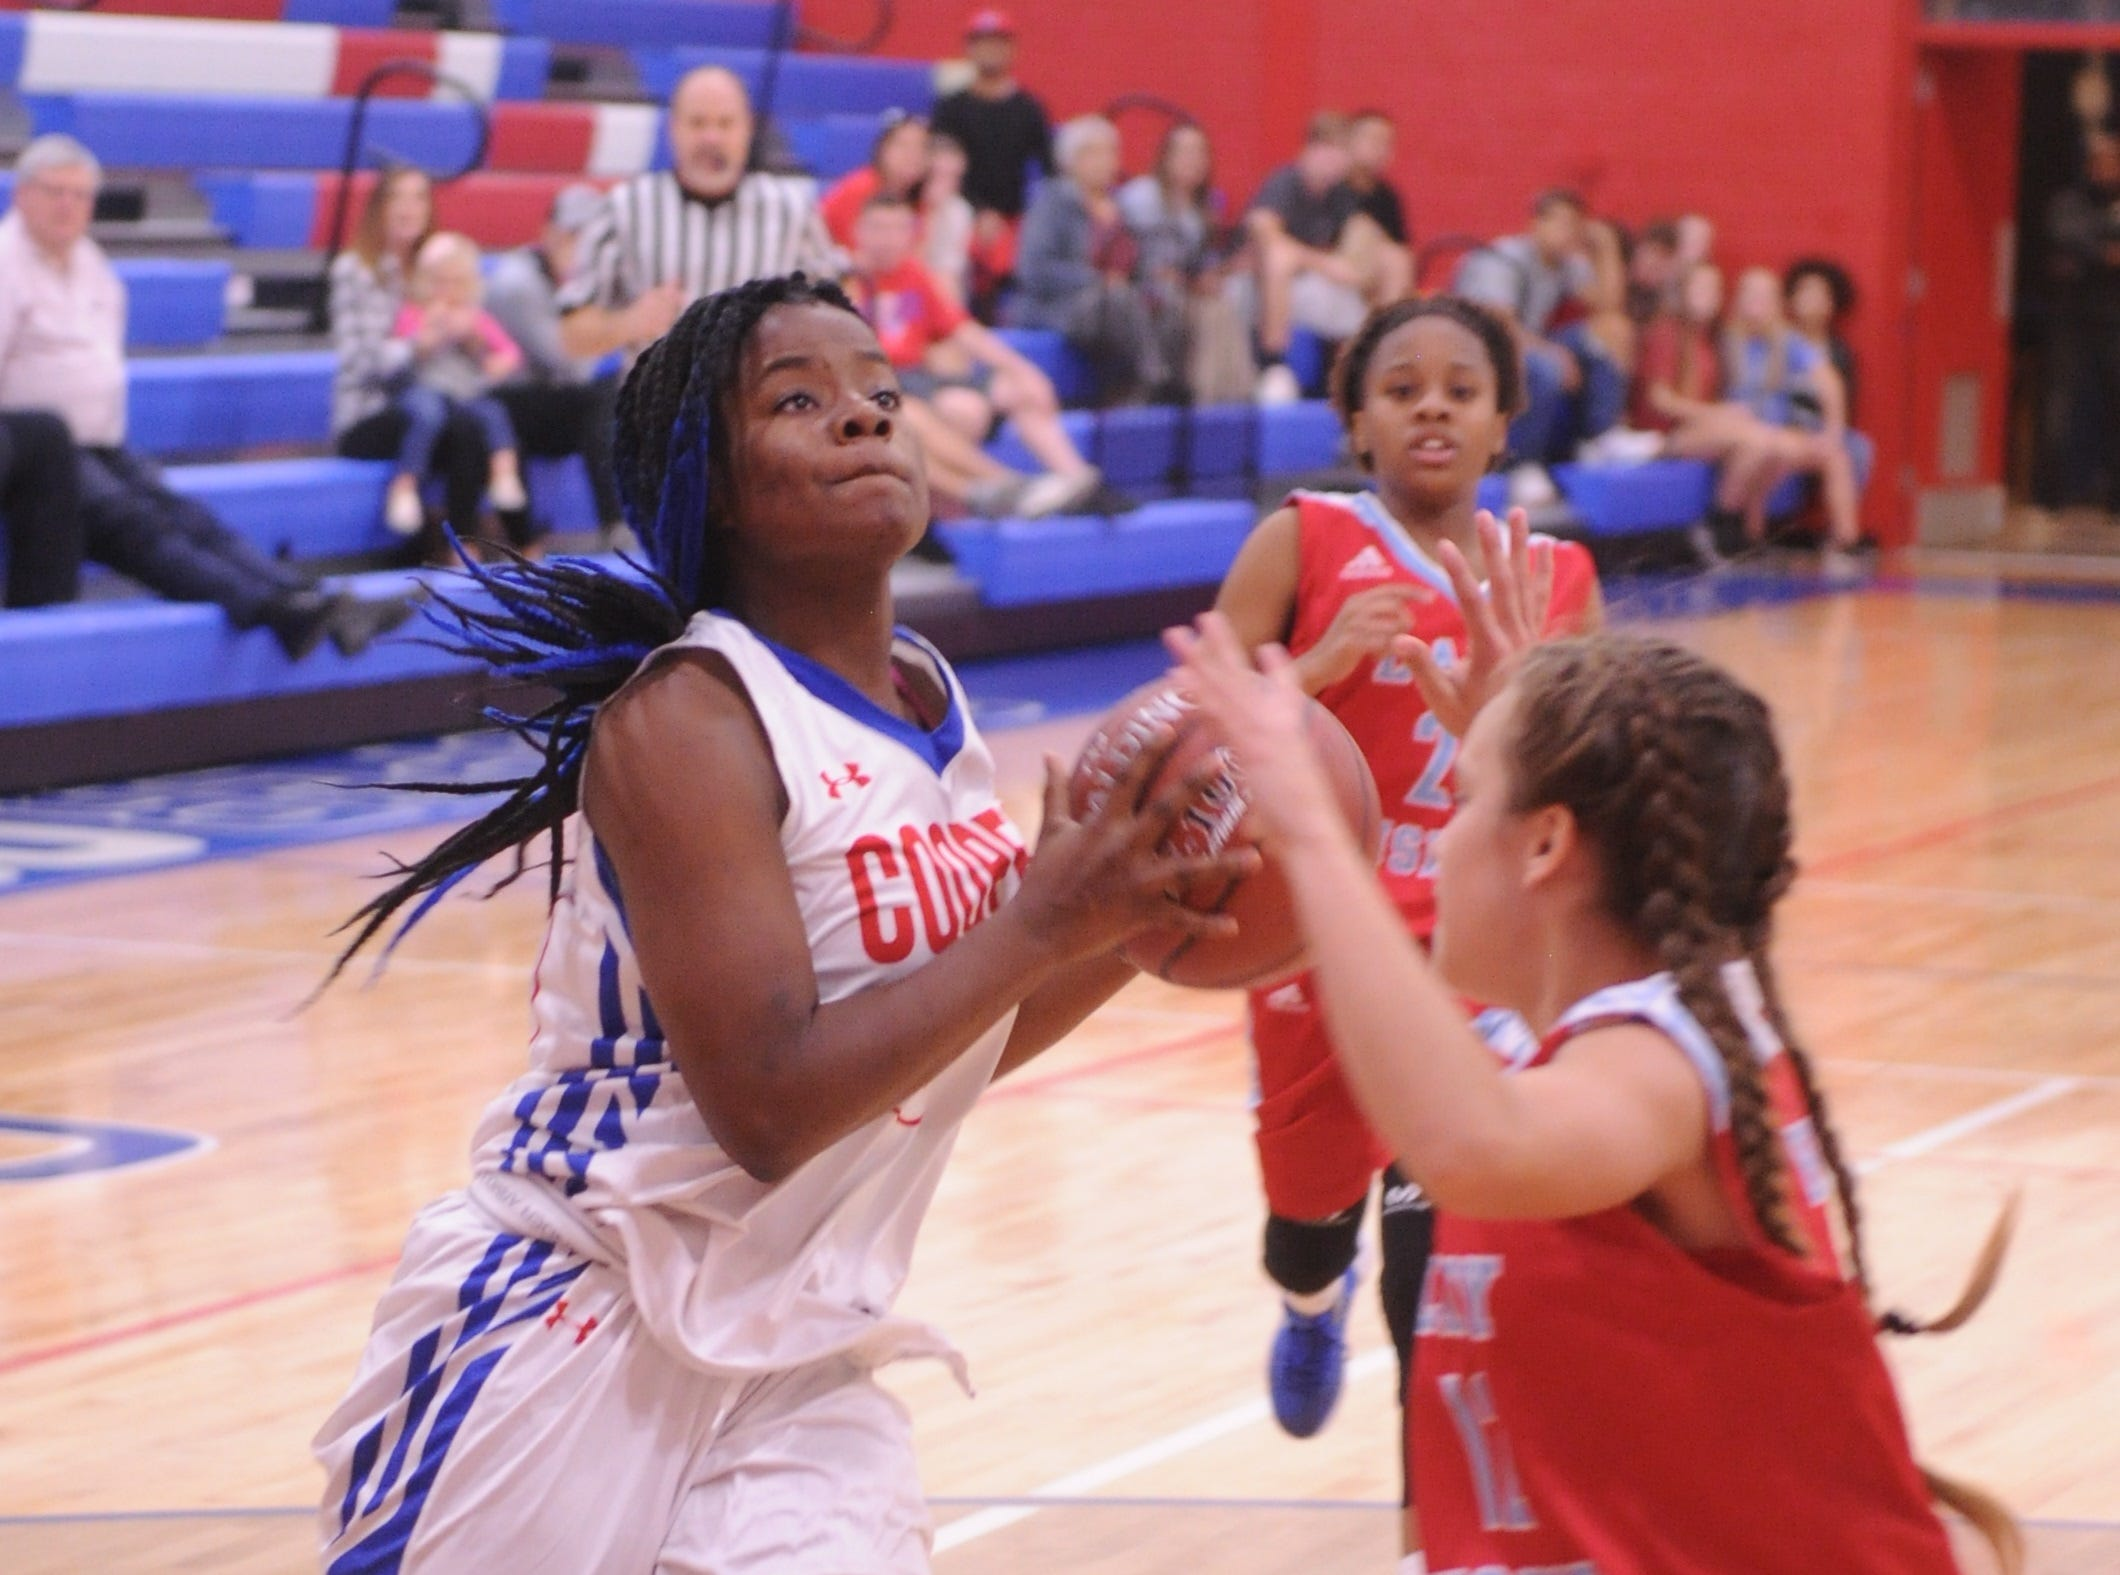 Cooper's Dazz Larkins, left, drives to the basket against a Wichita Falls Hirschi defender. Hirschi won the game 51-37 in the season opener for both teams Tuesday, Nov. 6, 2018, at Cougar Gym.